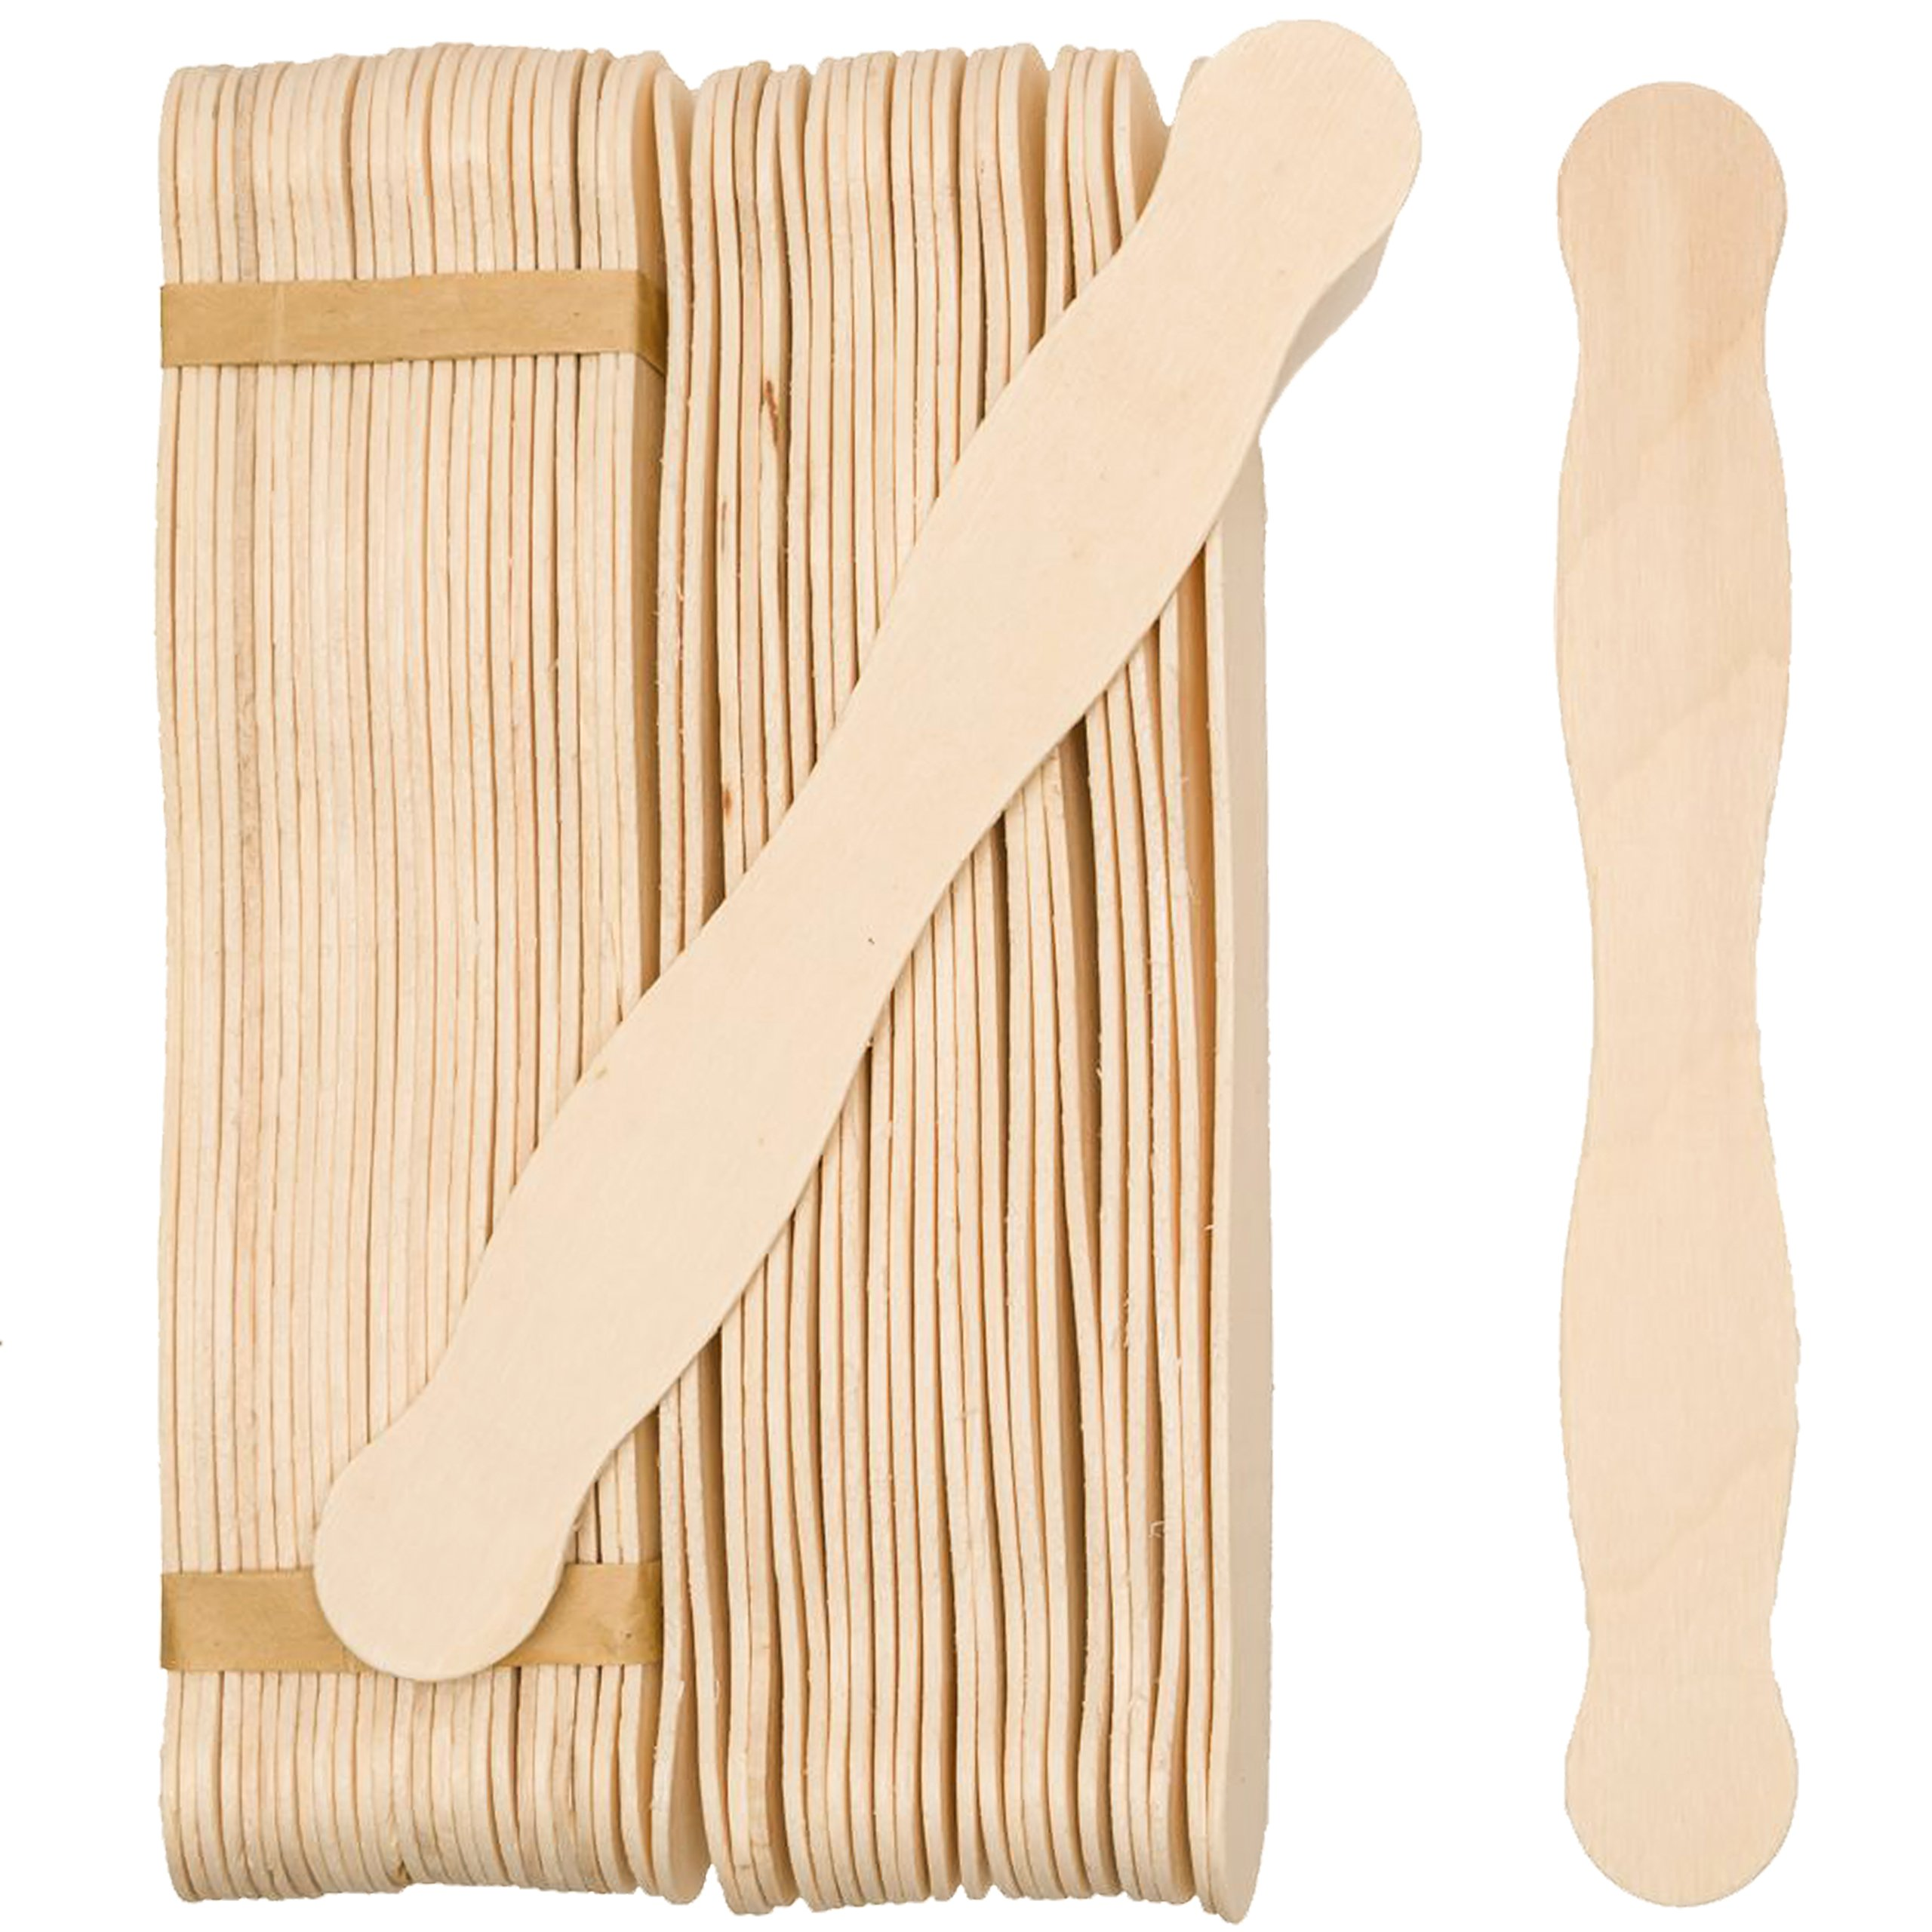 Wooden 8'' Fan Handles, Wedding Programs, or Paint Mixing, Pack 300, Jumbo Craft Popsicle Sticks for Auction Bid Paddles, Wooden Wavy Flat Stems for Any DIY Crafting Supplies Kit, by Woodpeckers